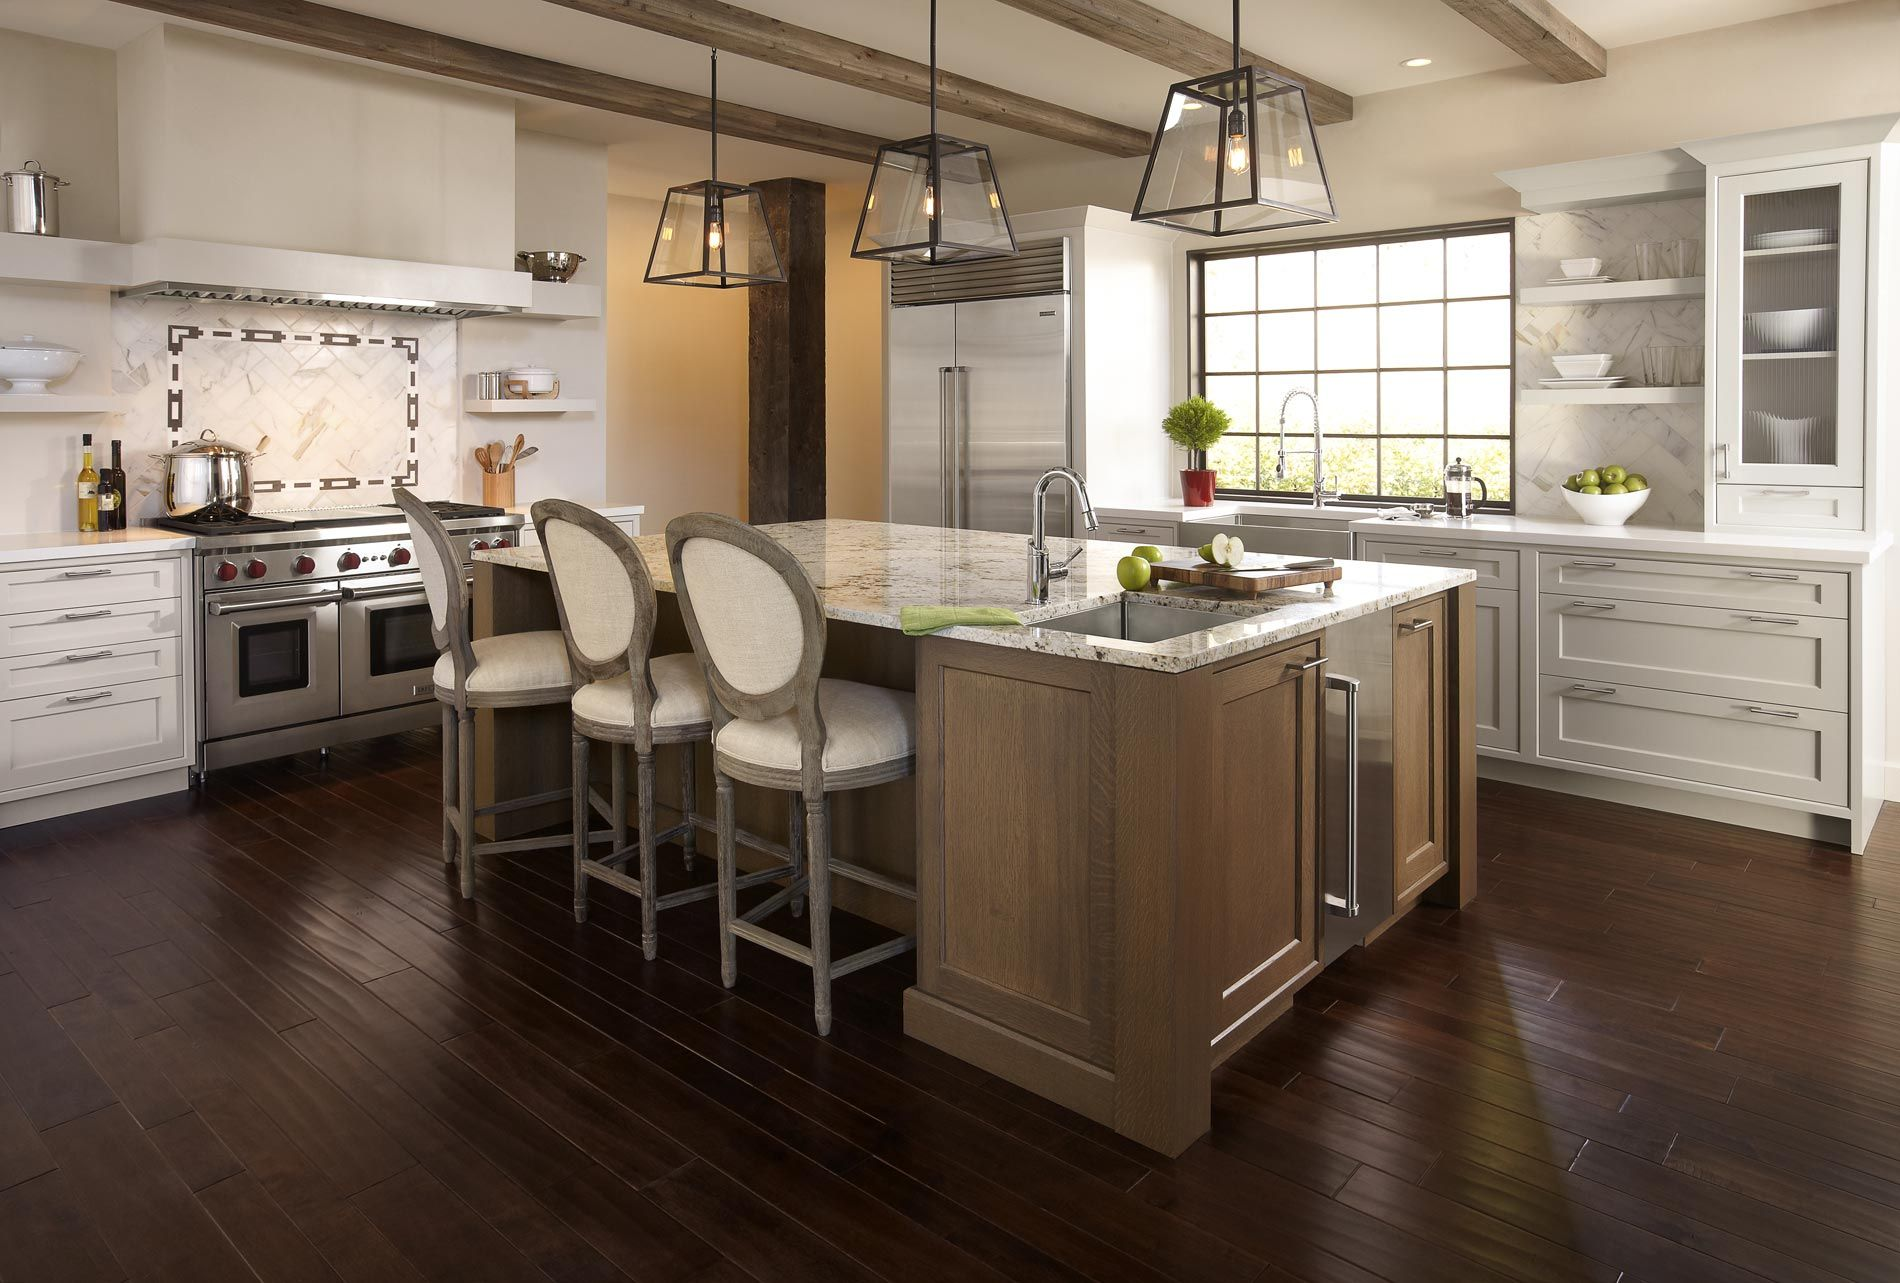 Beautiful Kitchen Space In 2020 Kitchen Inspiration Design Kitchen Cabinetry Custom Kitchens